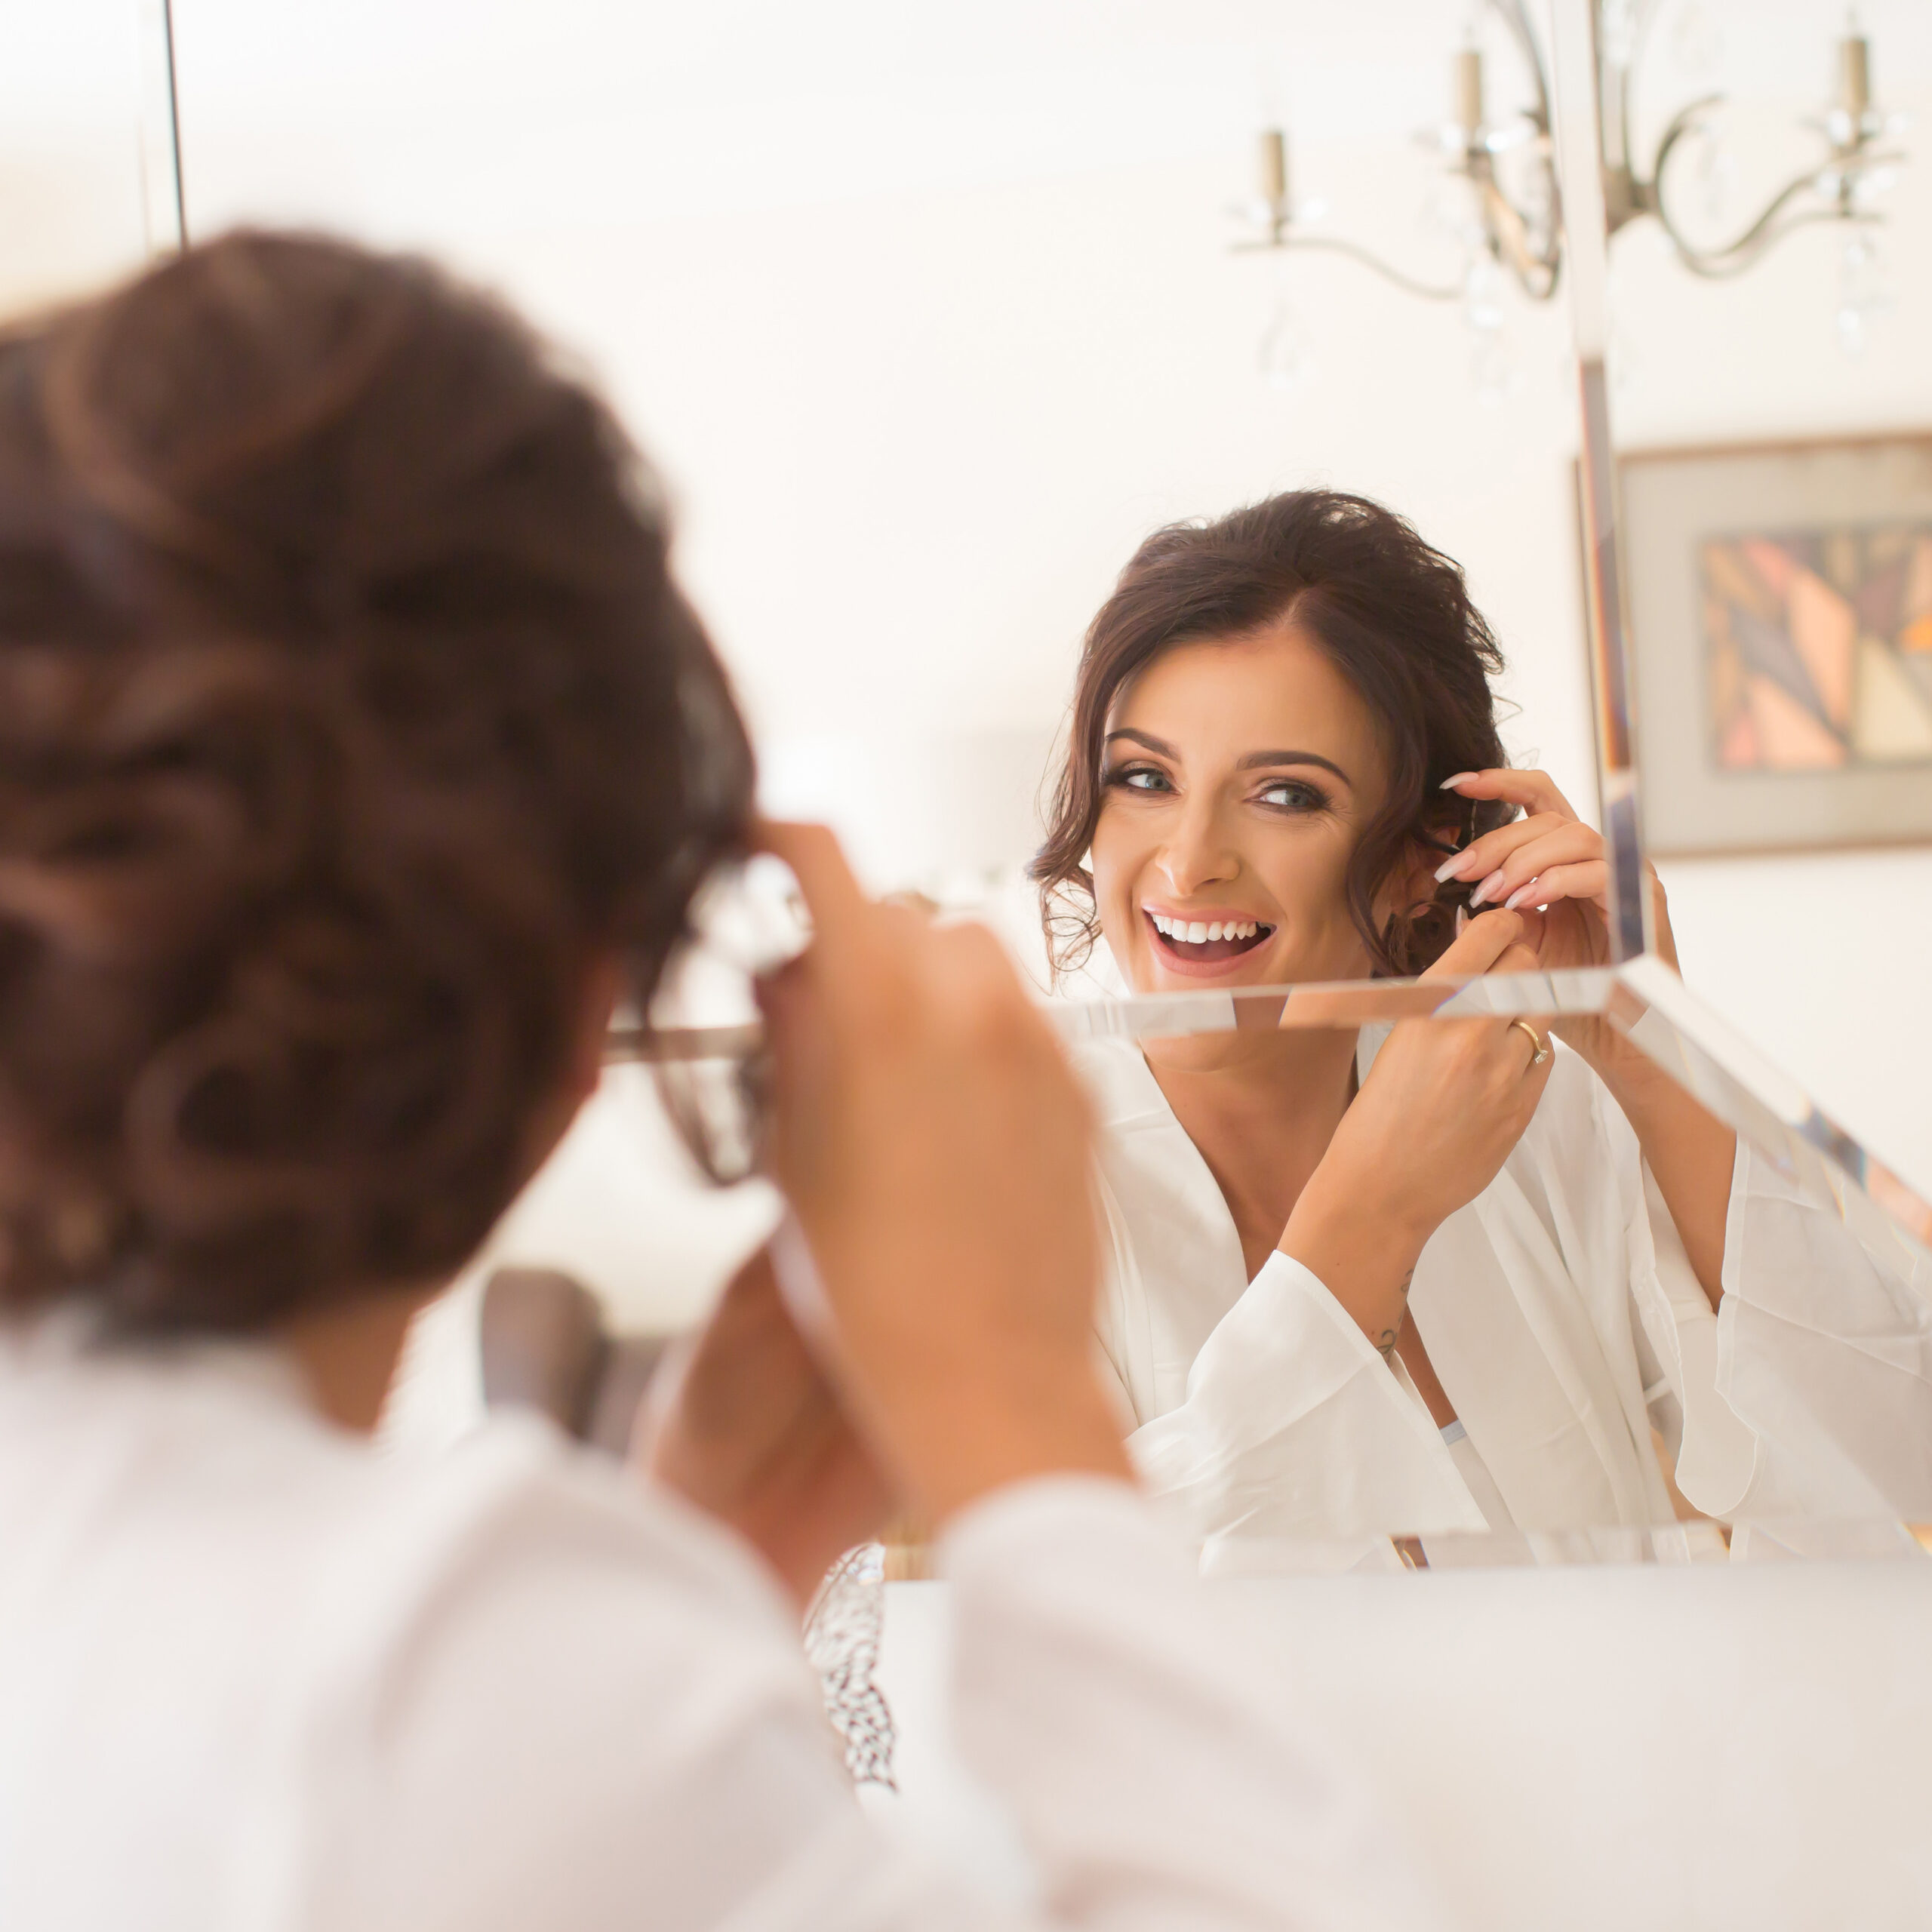 the groom adjusts his bow tie in the mirror